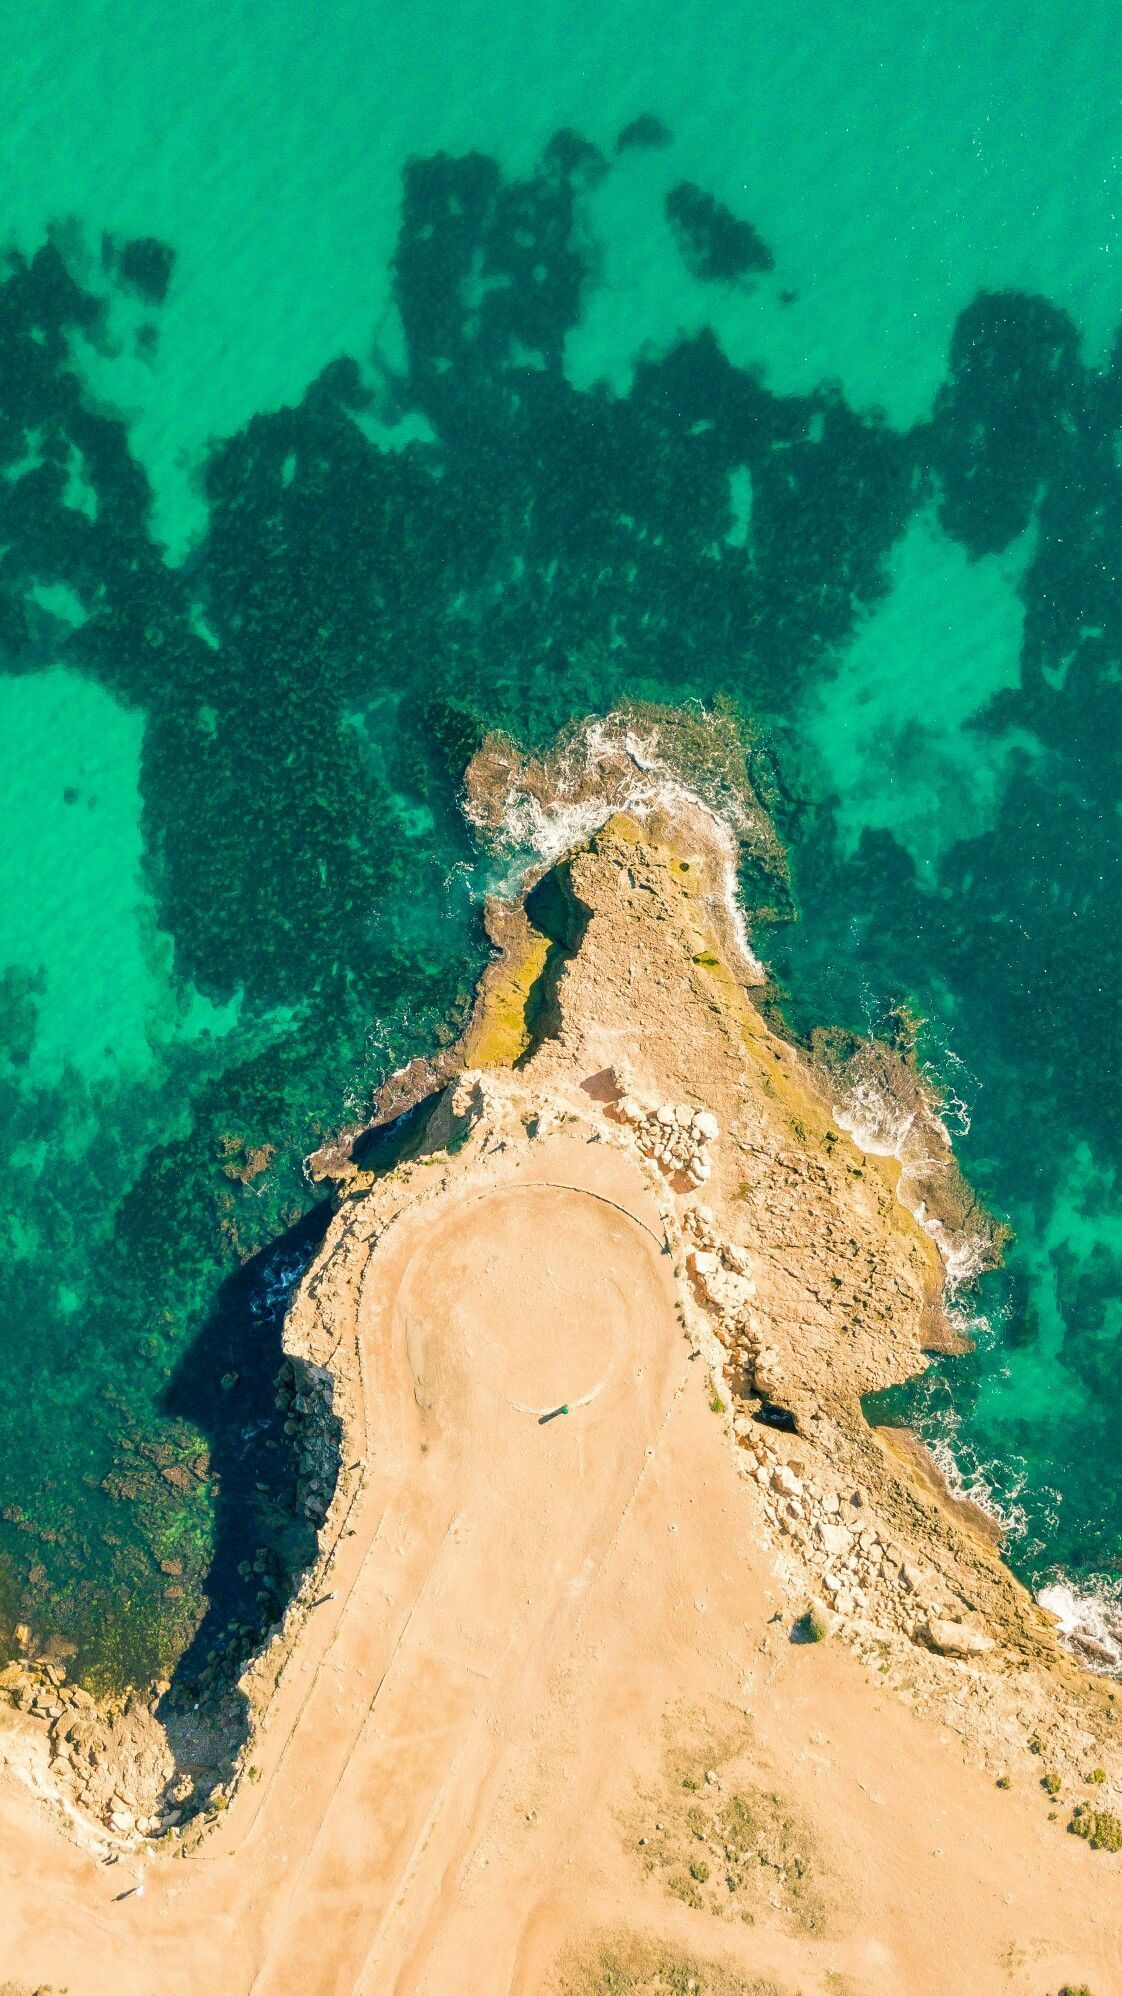 Dronephotography Aerial Photography Drone Aerial Photography Nature Photography